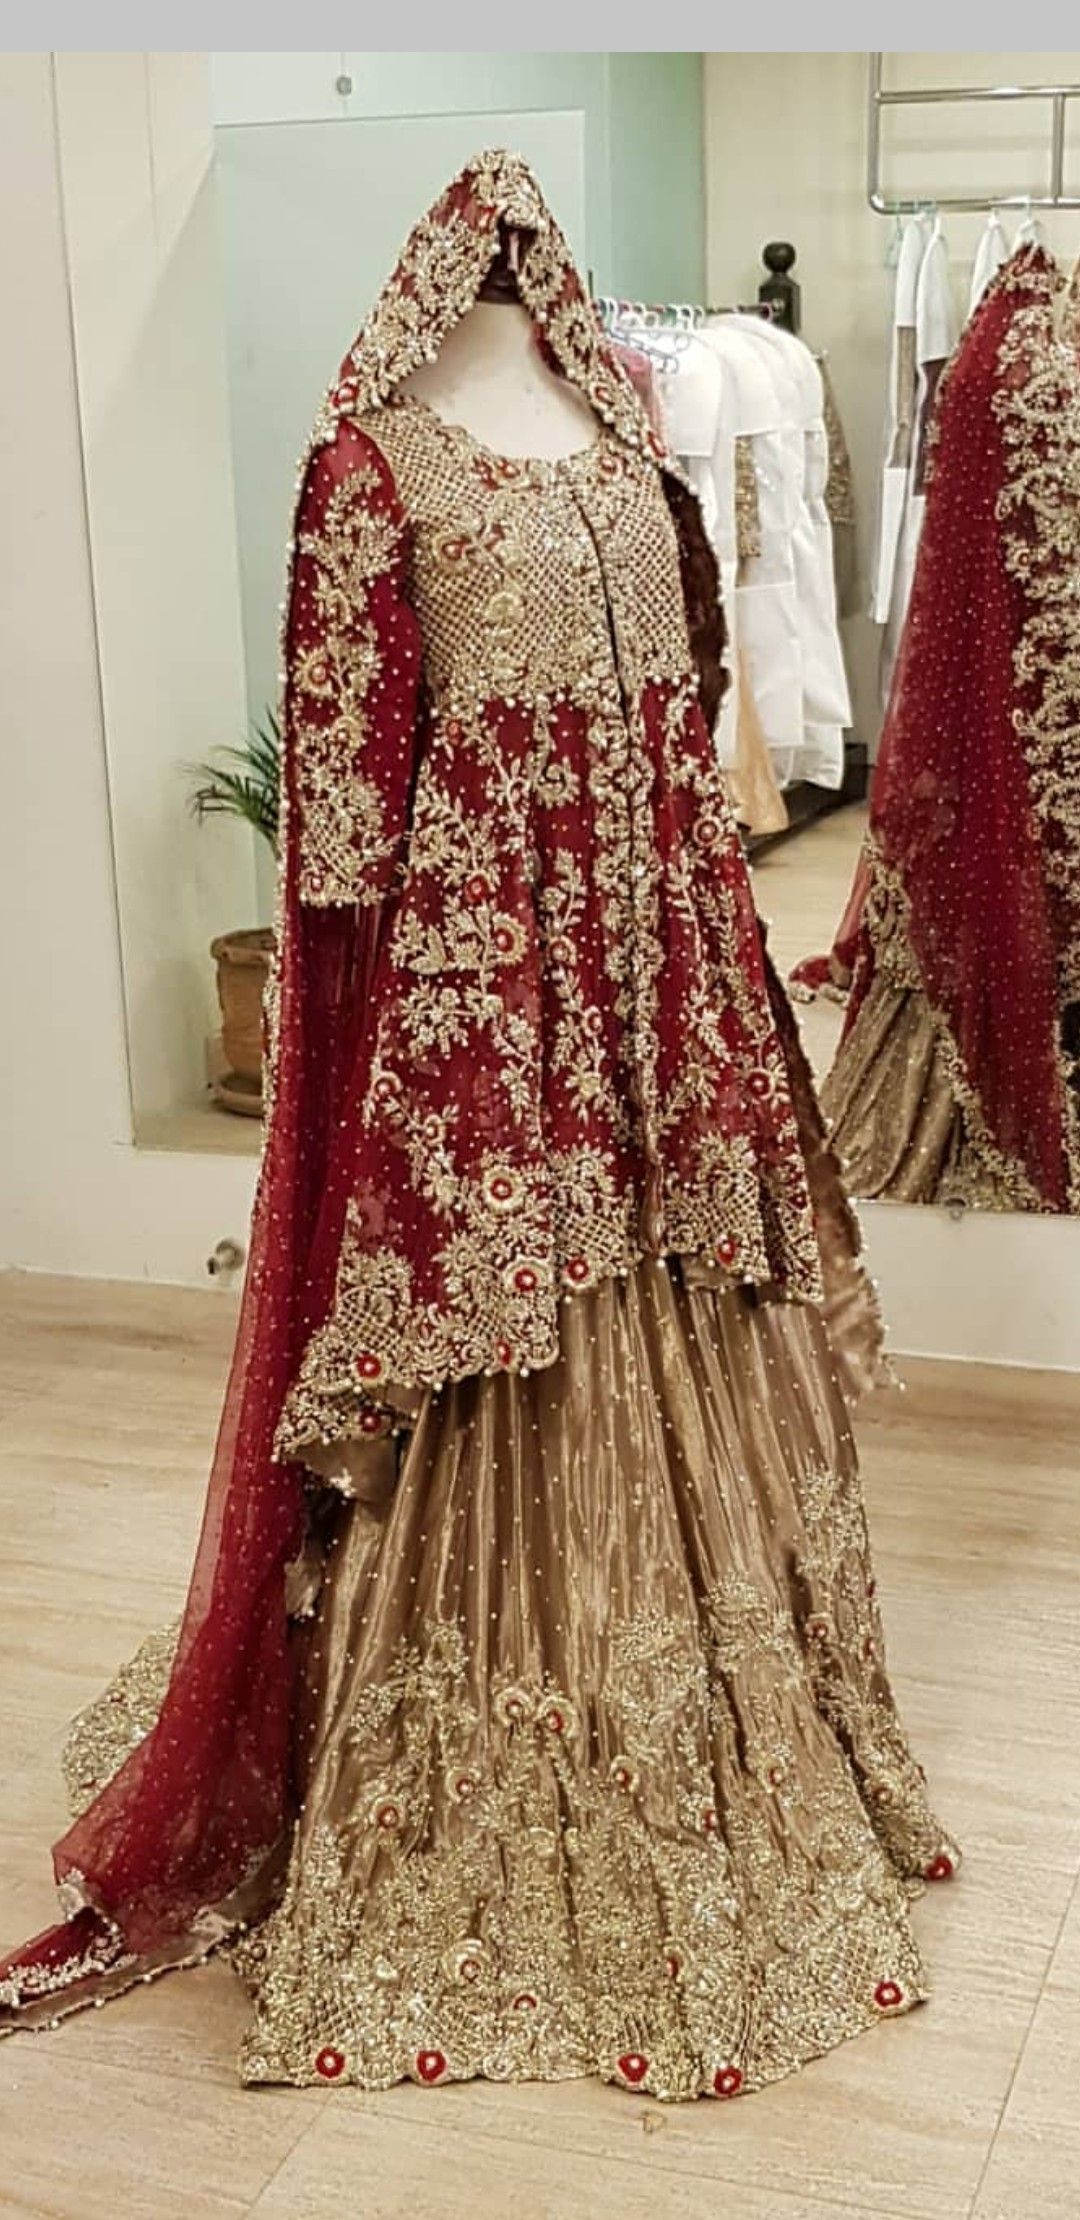 Tanya While In Western Cultures Brides Traditionally Wear White Dresses Many Eastern Cultures Hav Red Bridal Dress Indian Bridal Dress Desi Wedding Dresses,Black Women Wedding Dresses 2020